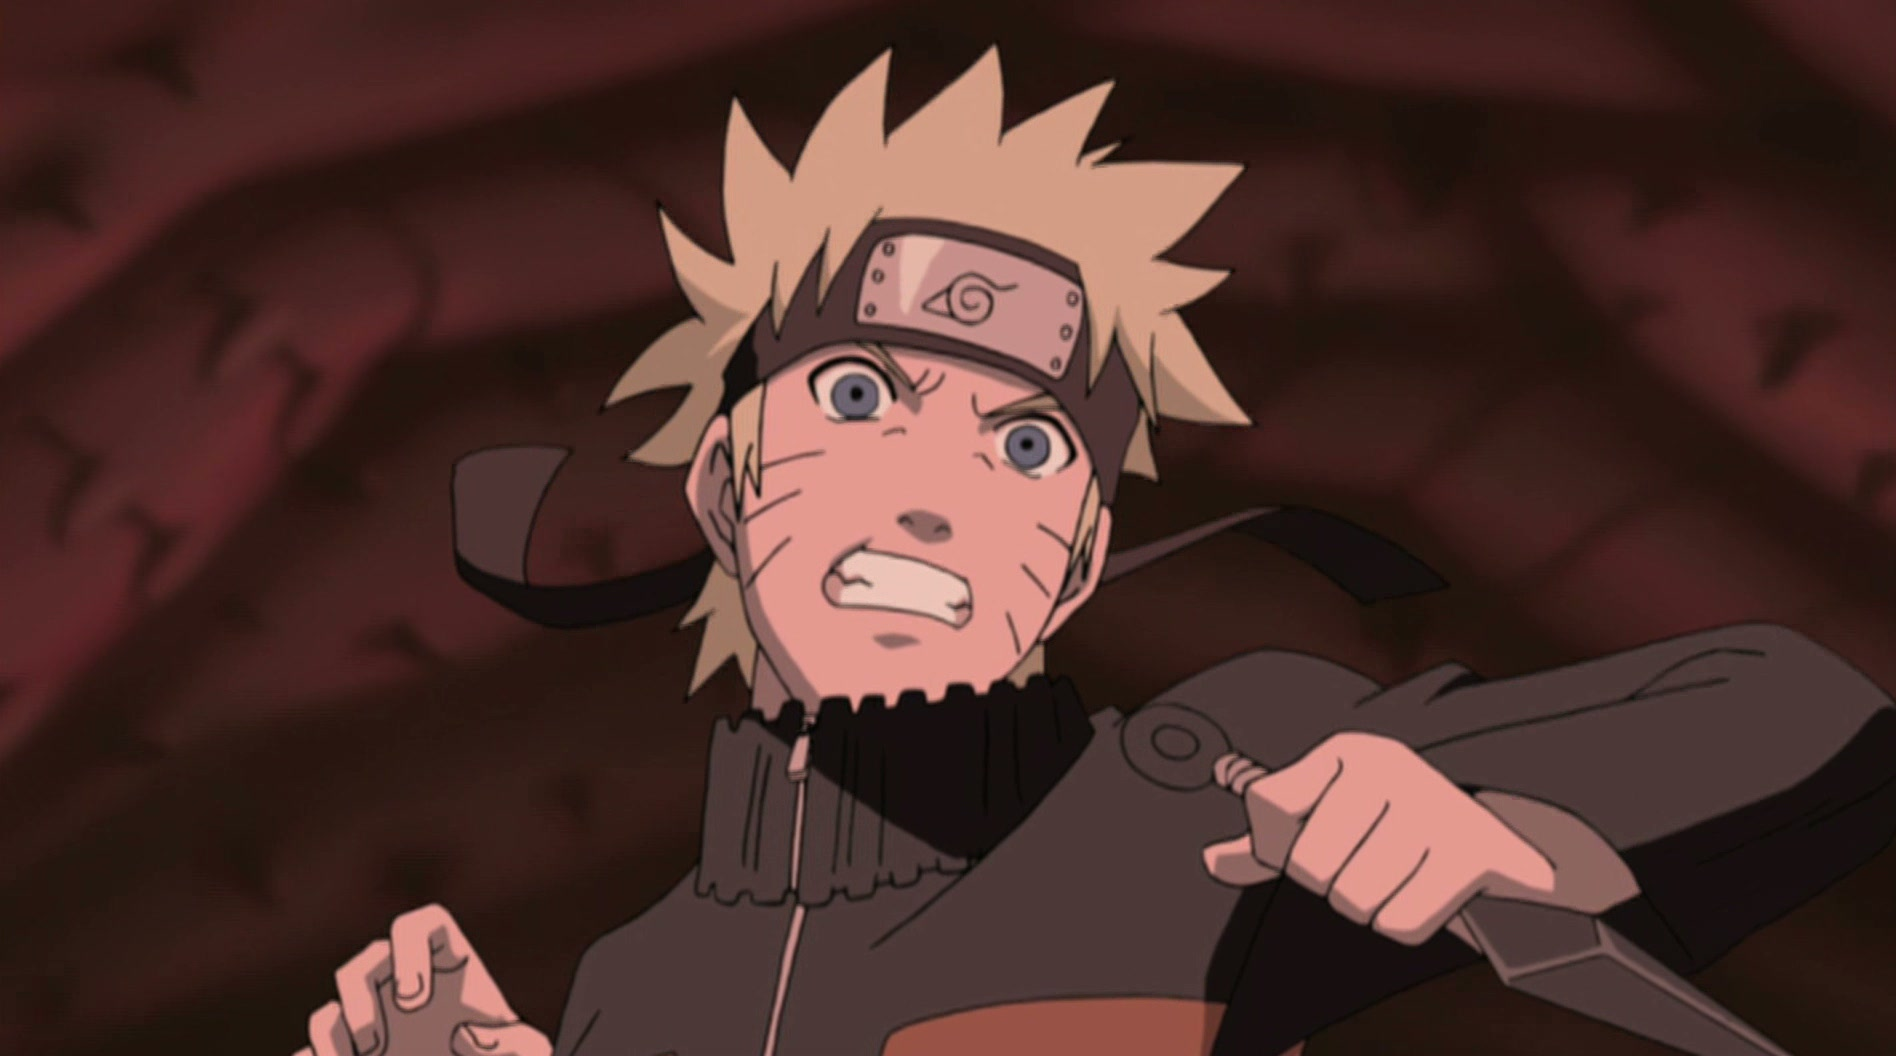 Naruto Shippuden: Three-Tails Appears Episode 108, Guidepost